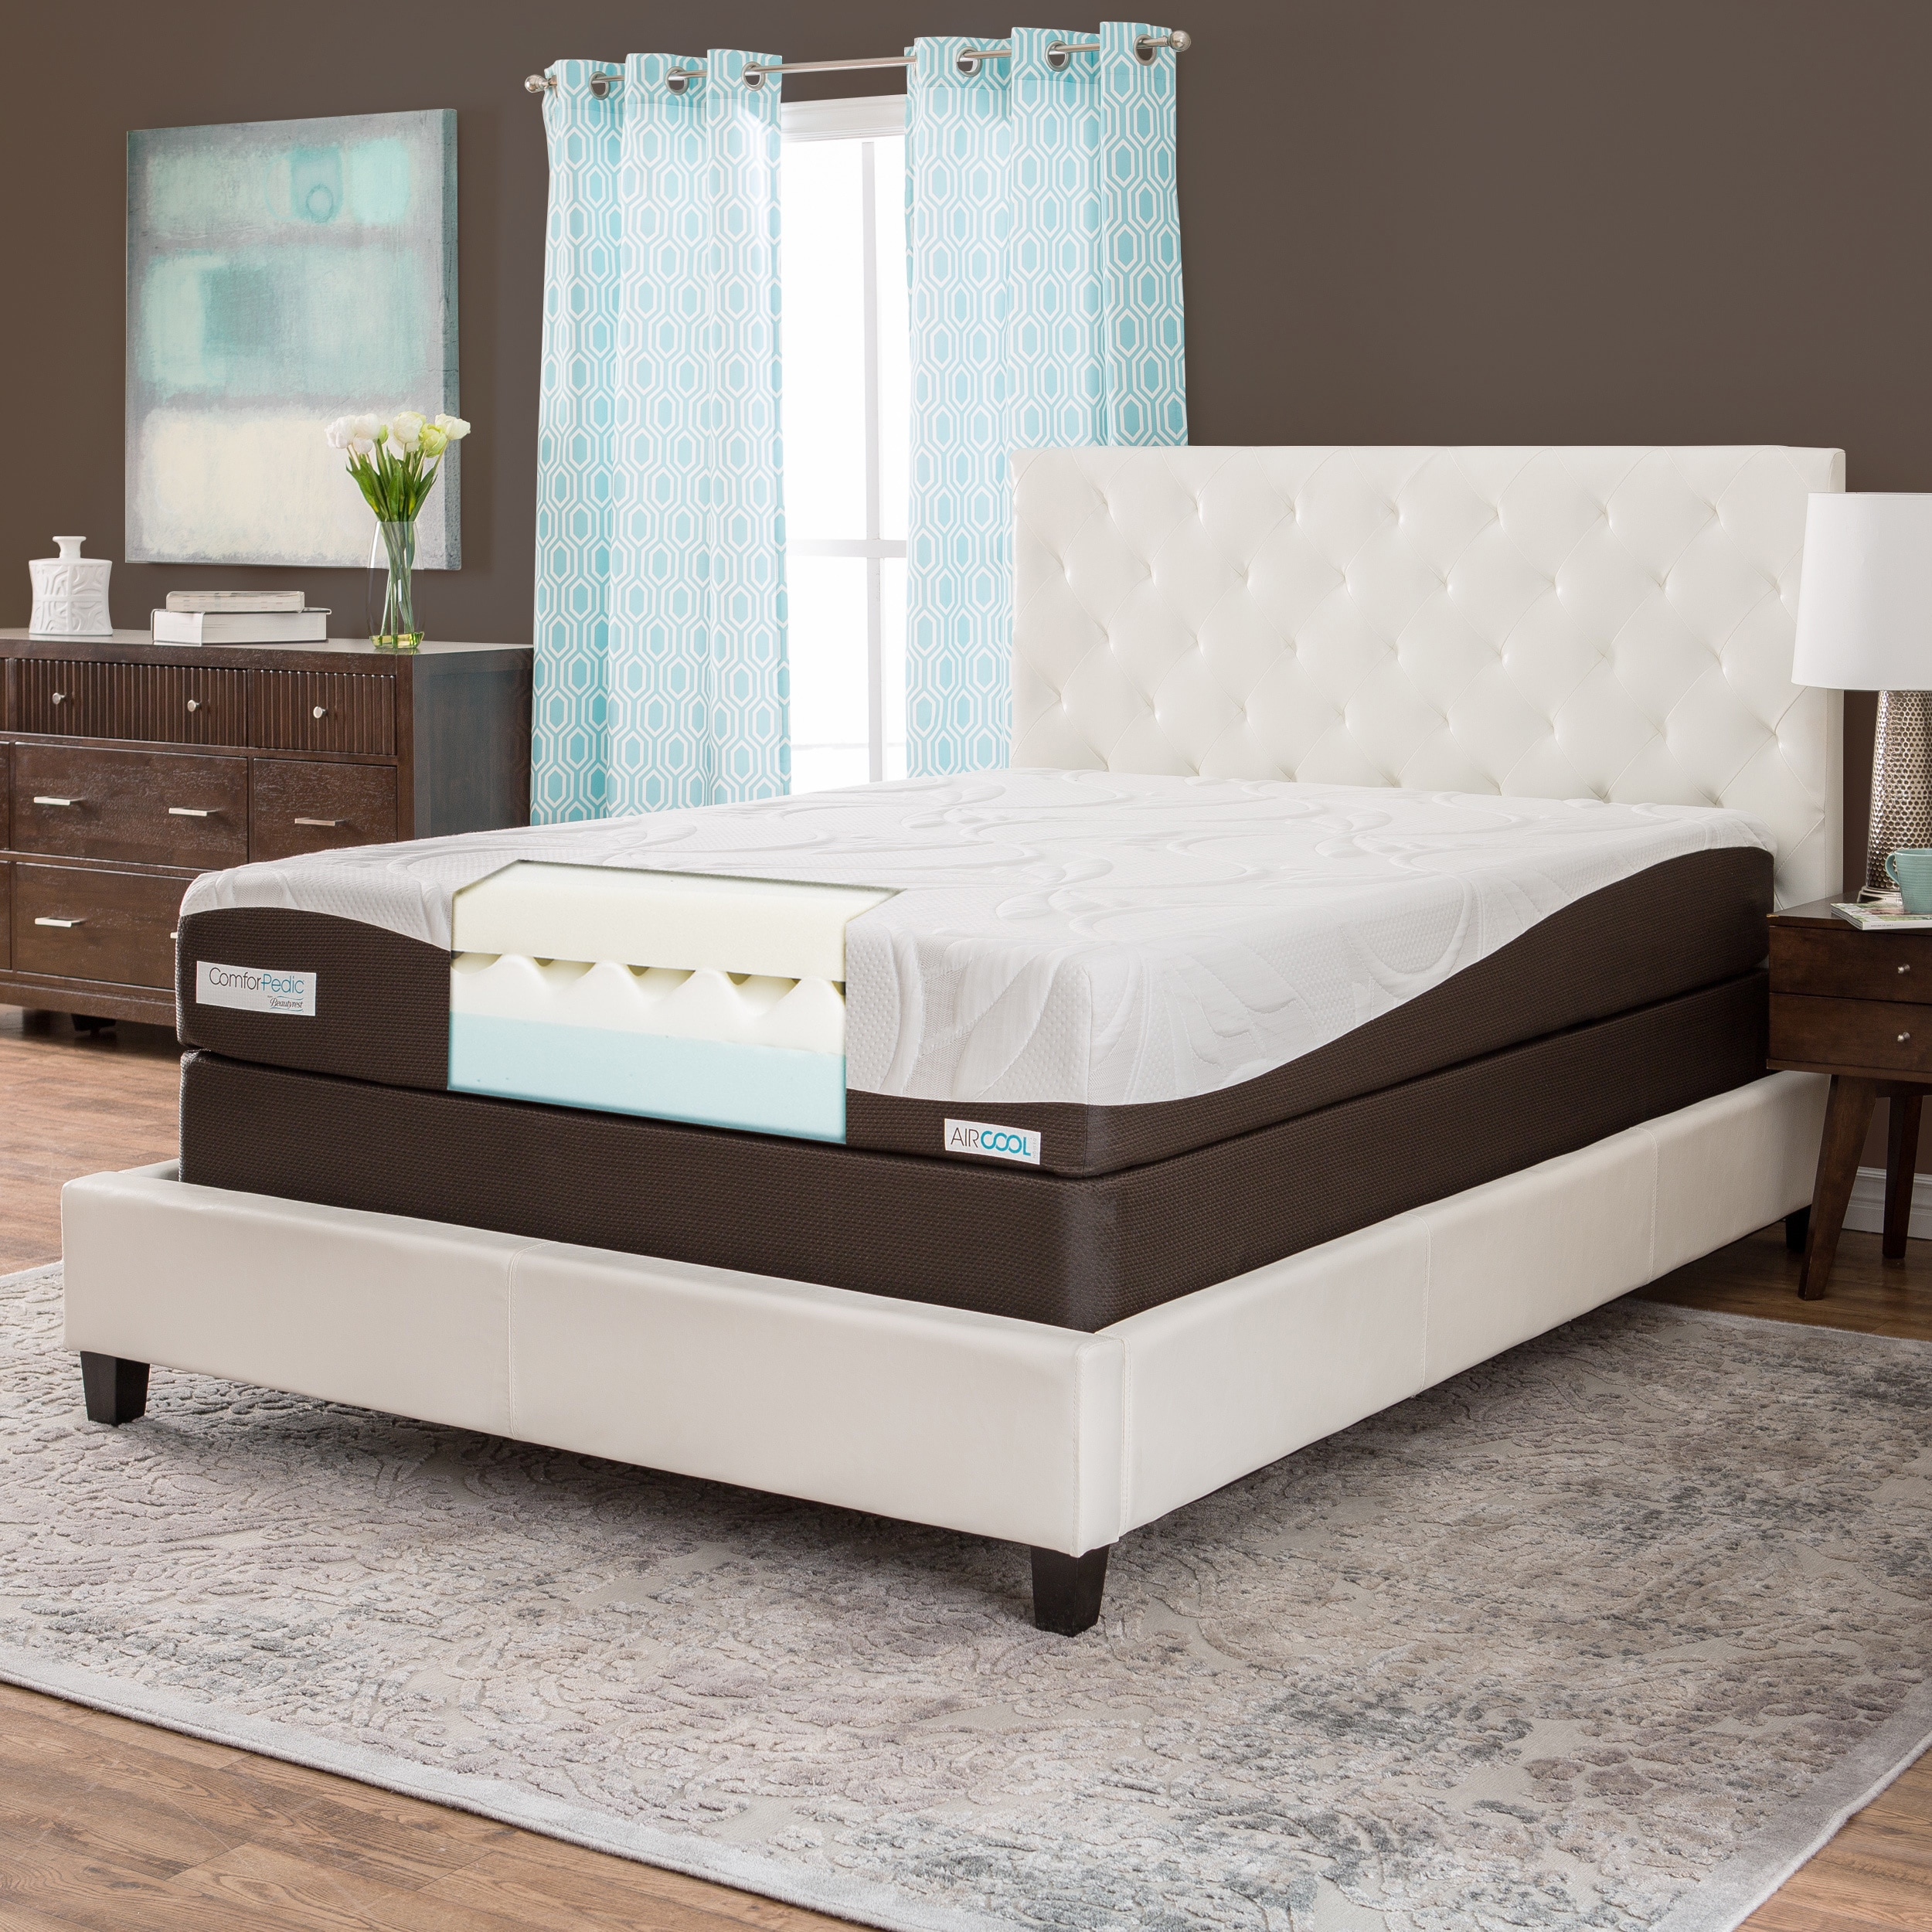 Simmons Beautyrest ComforPedic from Beautyrest 10-inch Queen-size Memory Foam Mattress Set by Overstock